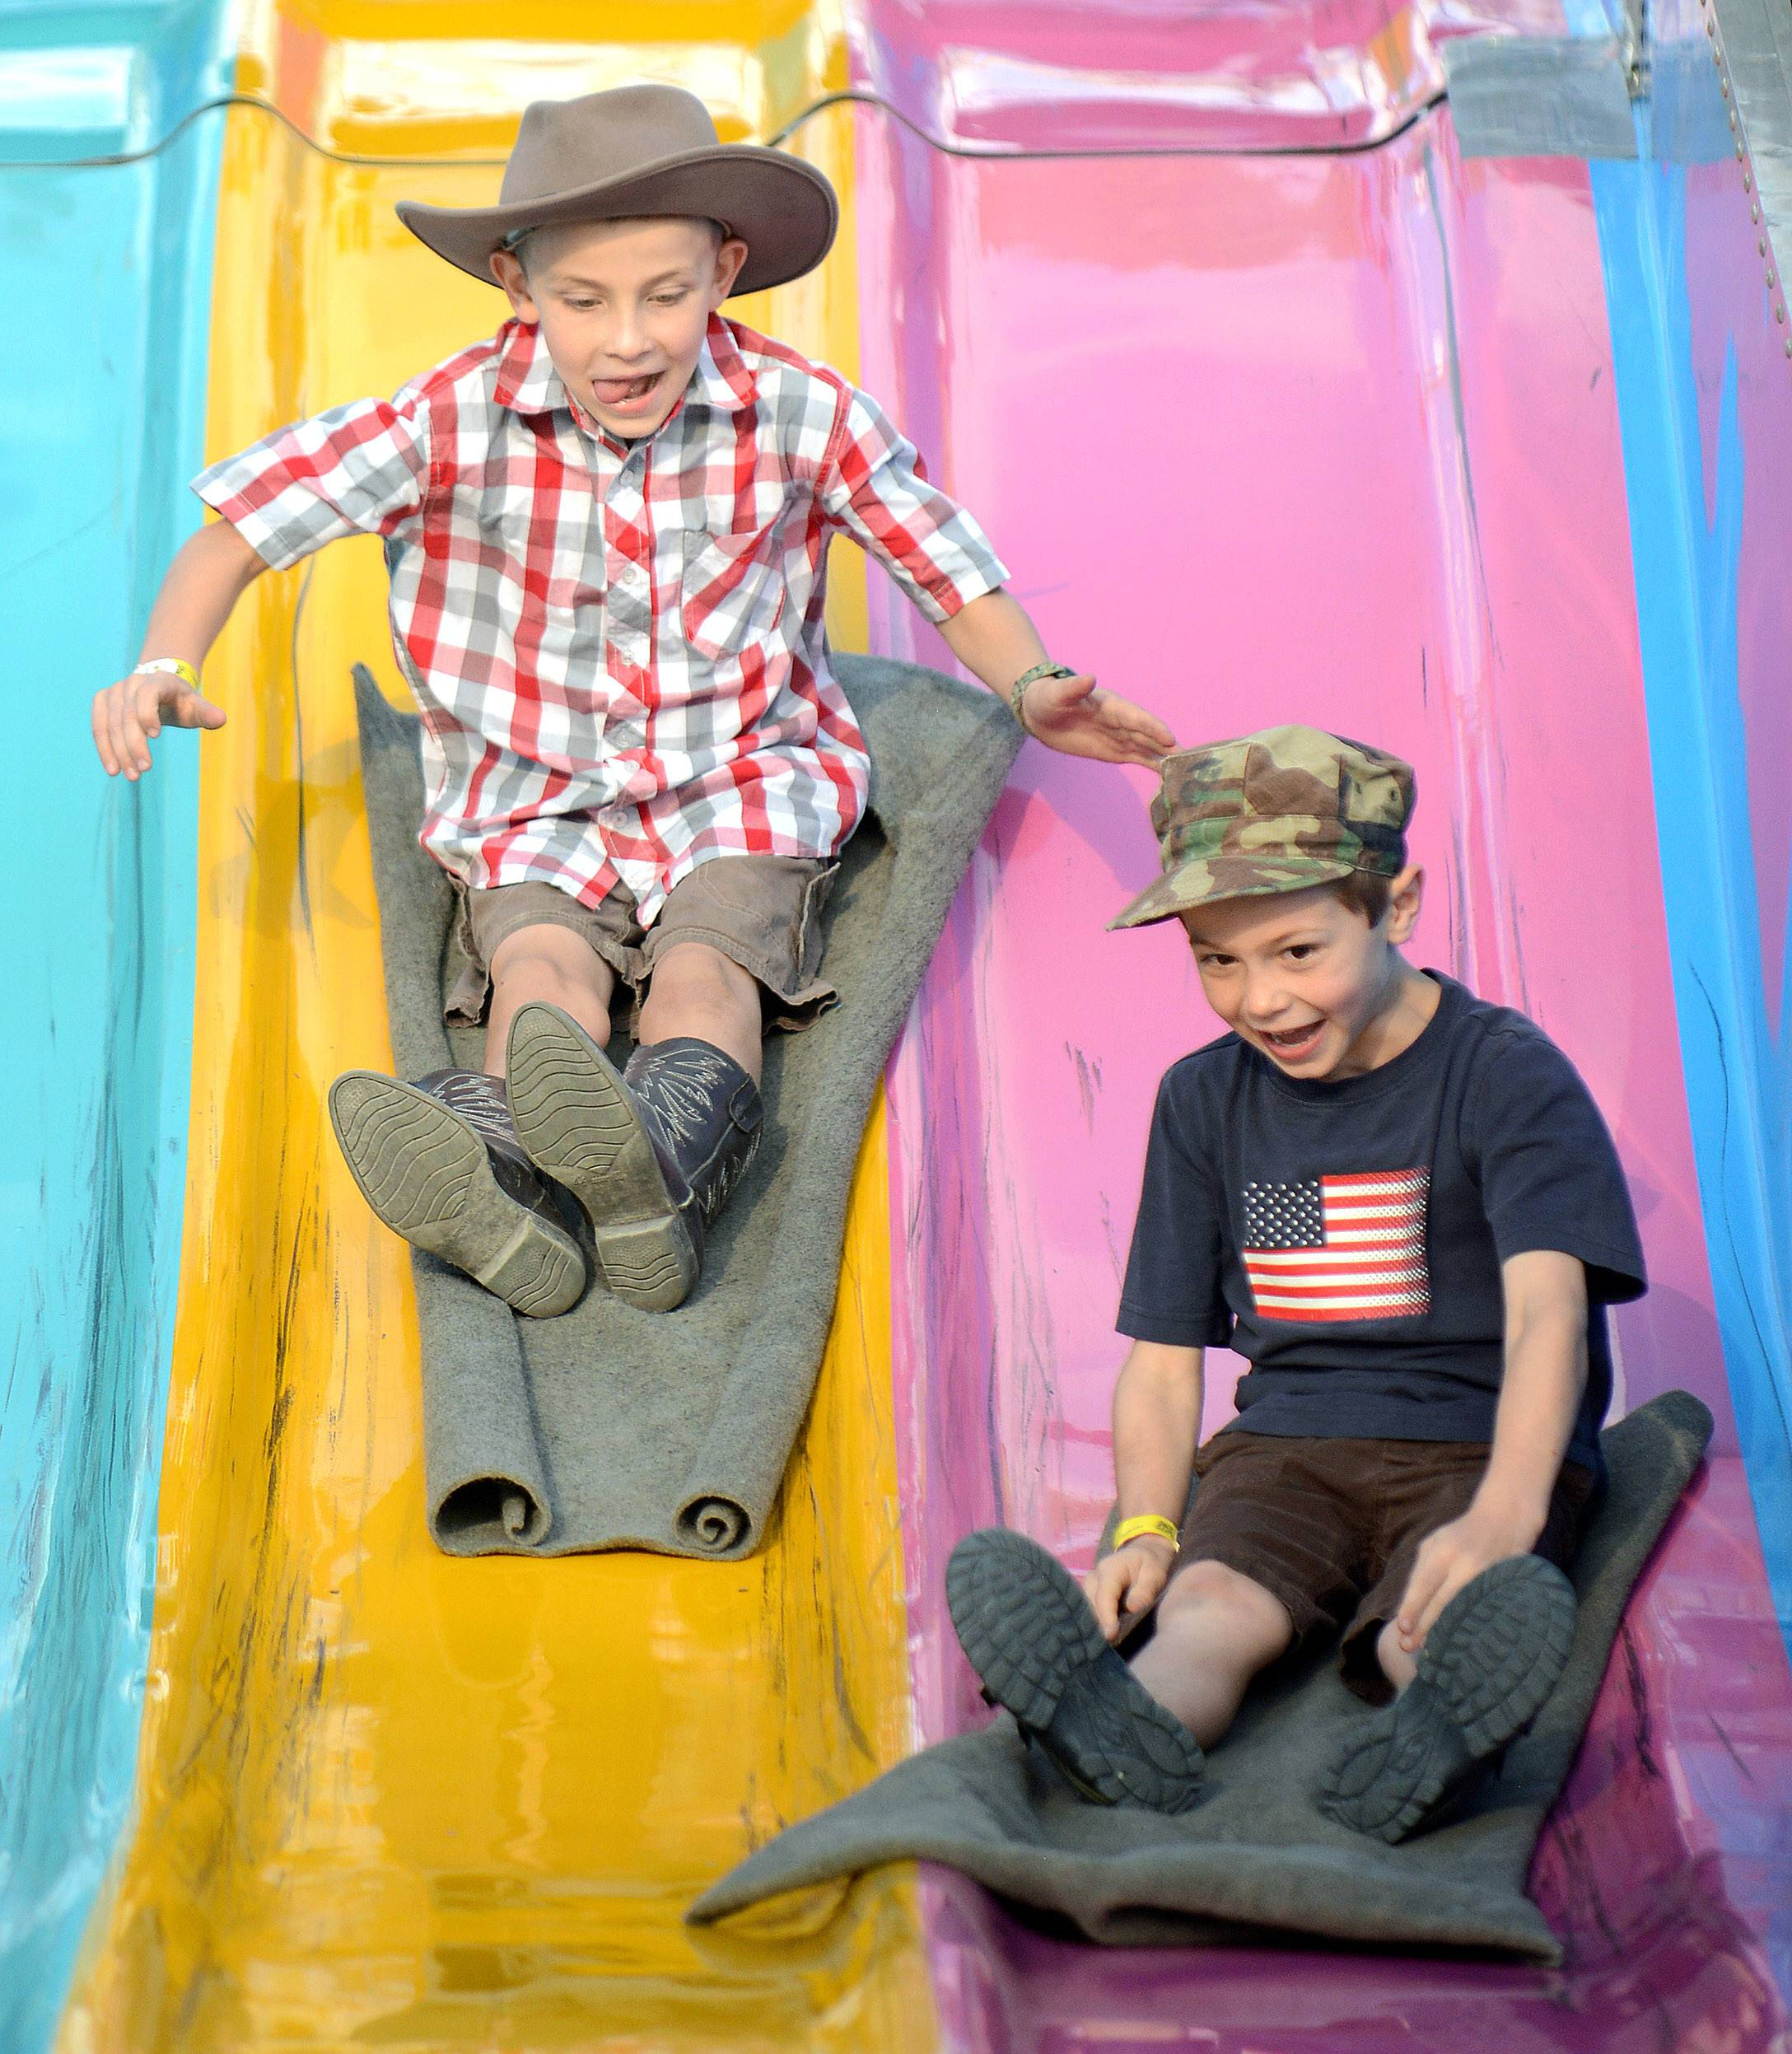 Aiden Best, 9, of Hampshire, and his brother, Jacob, 7, zip down the Fun Slide ride on the Midway Wednesday during opening day of the 146th Kane County Fair in St. Charles. Aiden showed chickens earlier in the day for the first with his 4-H club from Burlington.